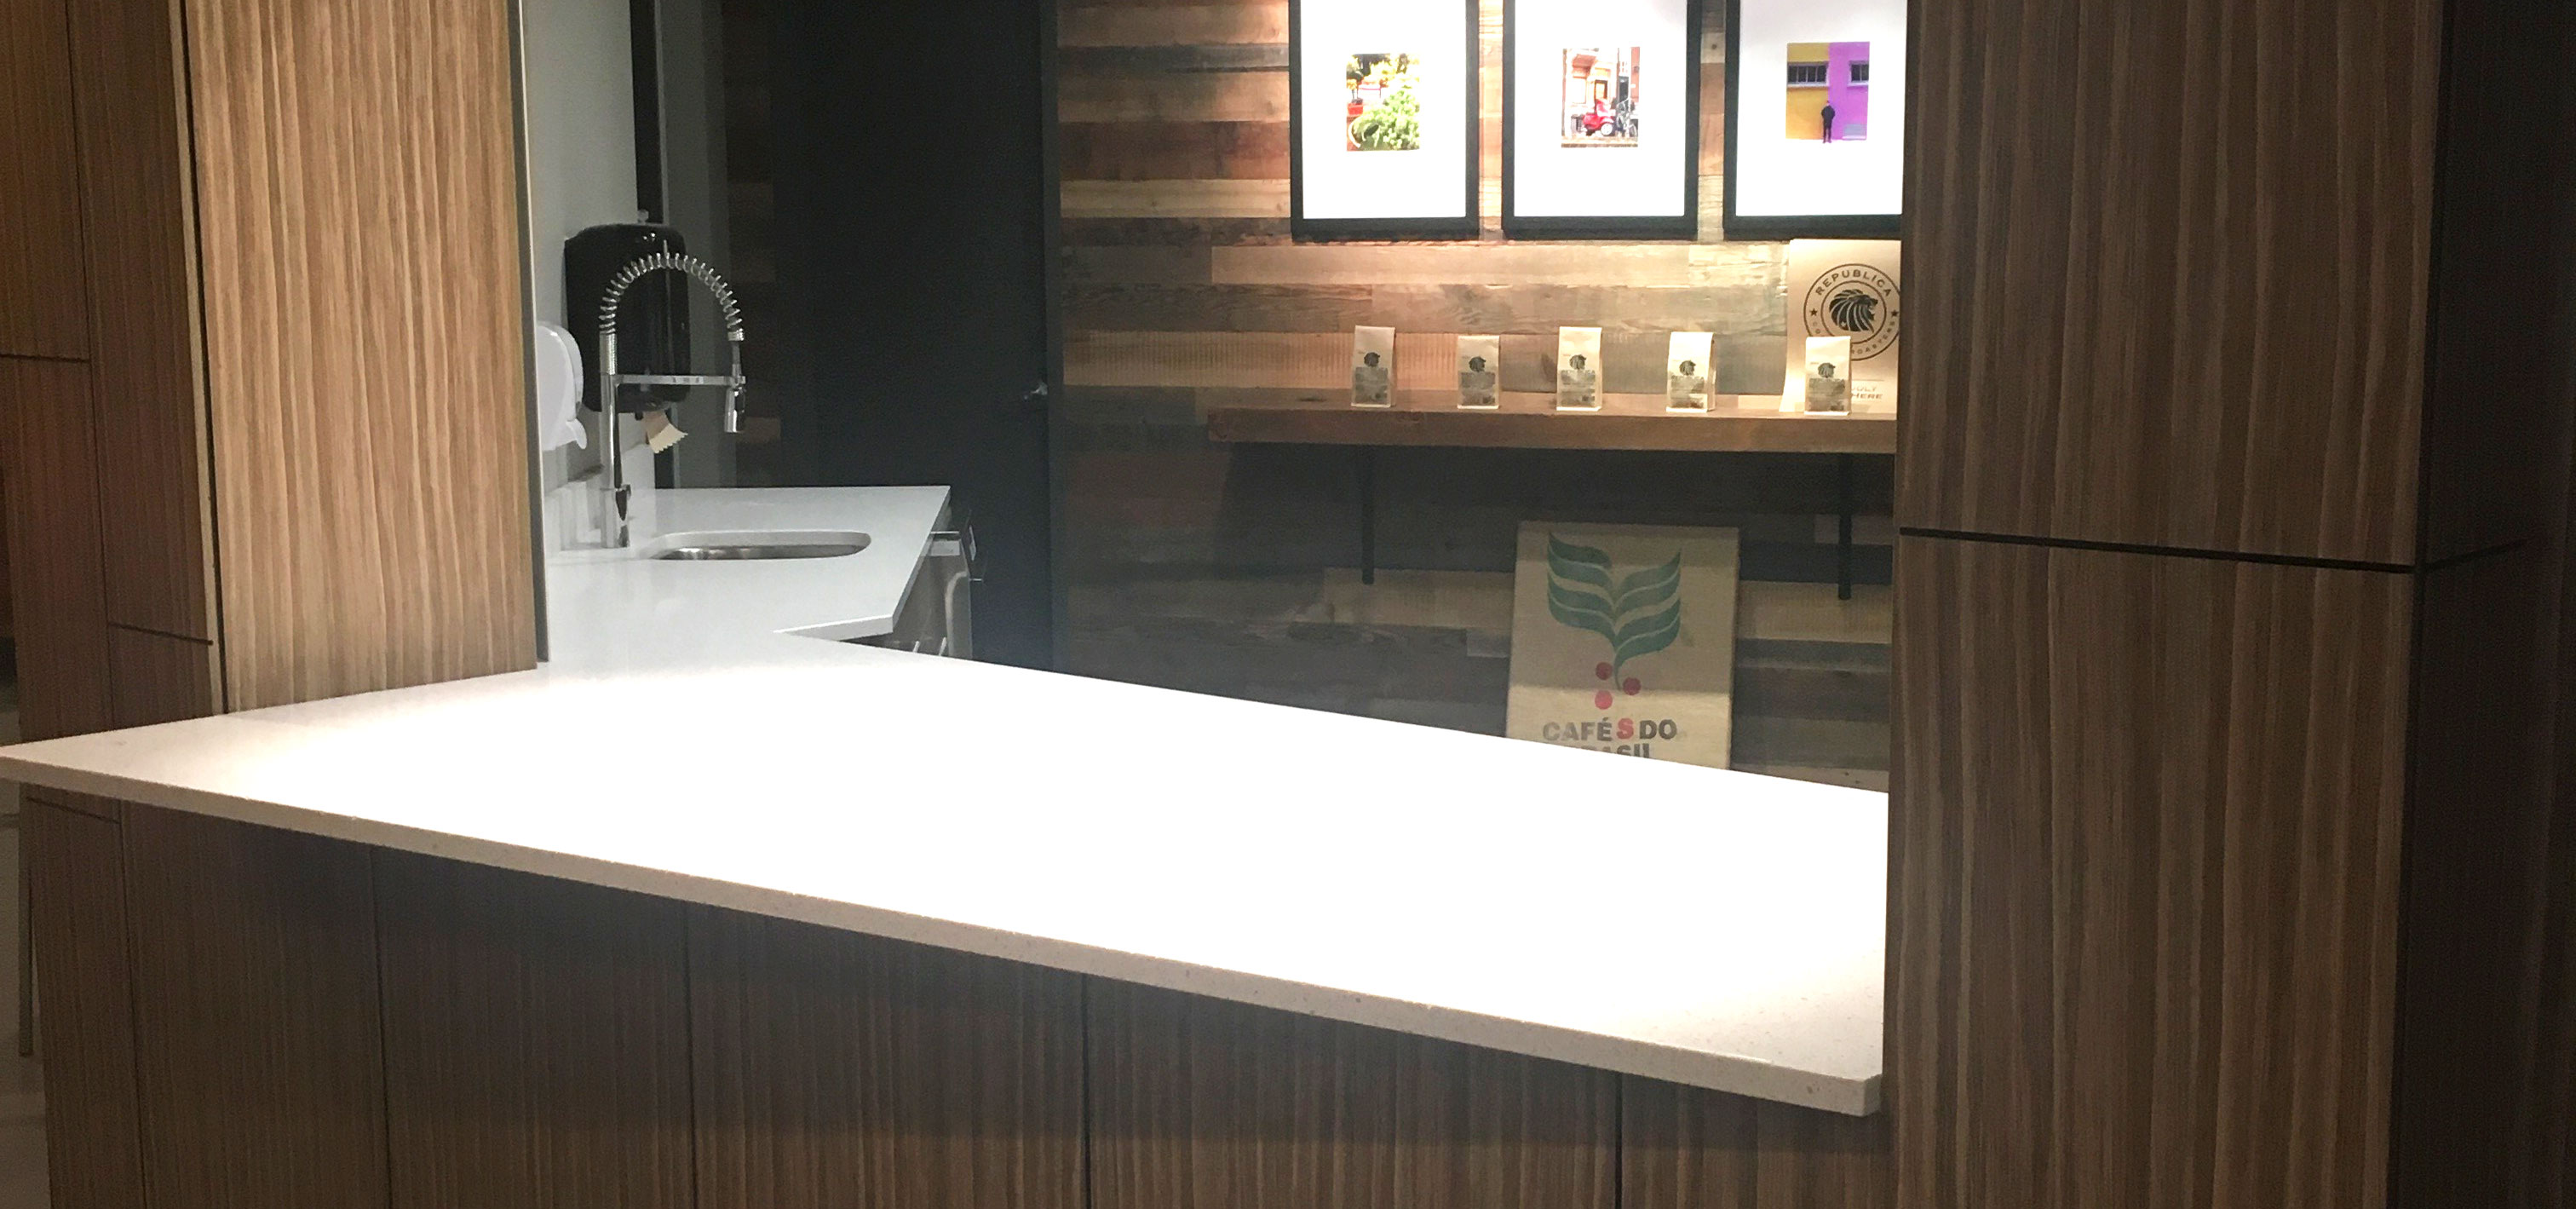 CLA Church | Coffee Bar